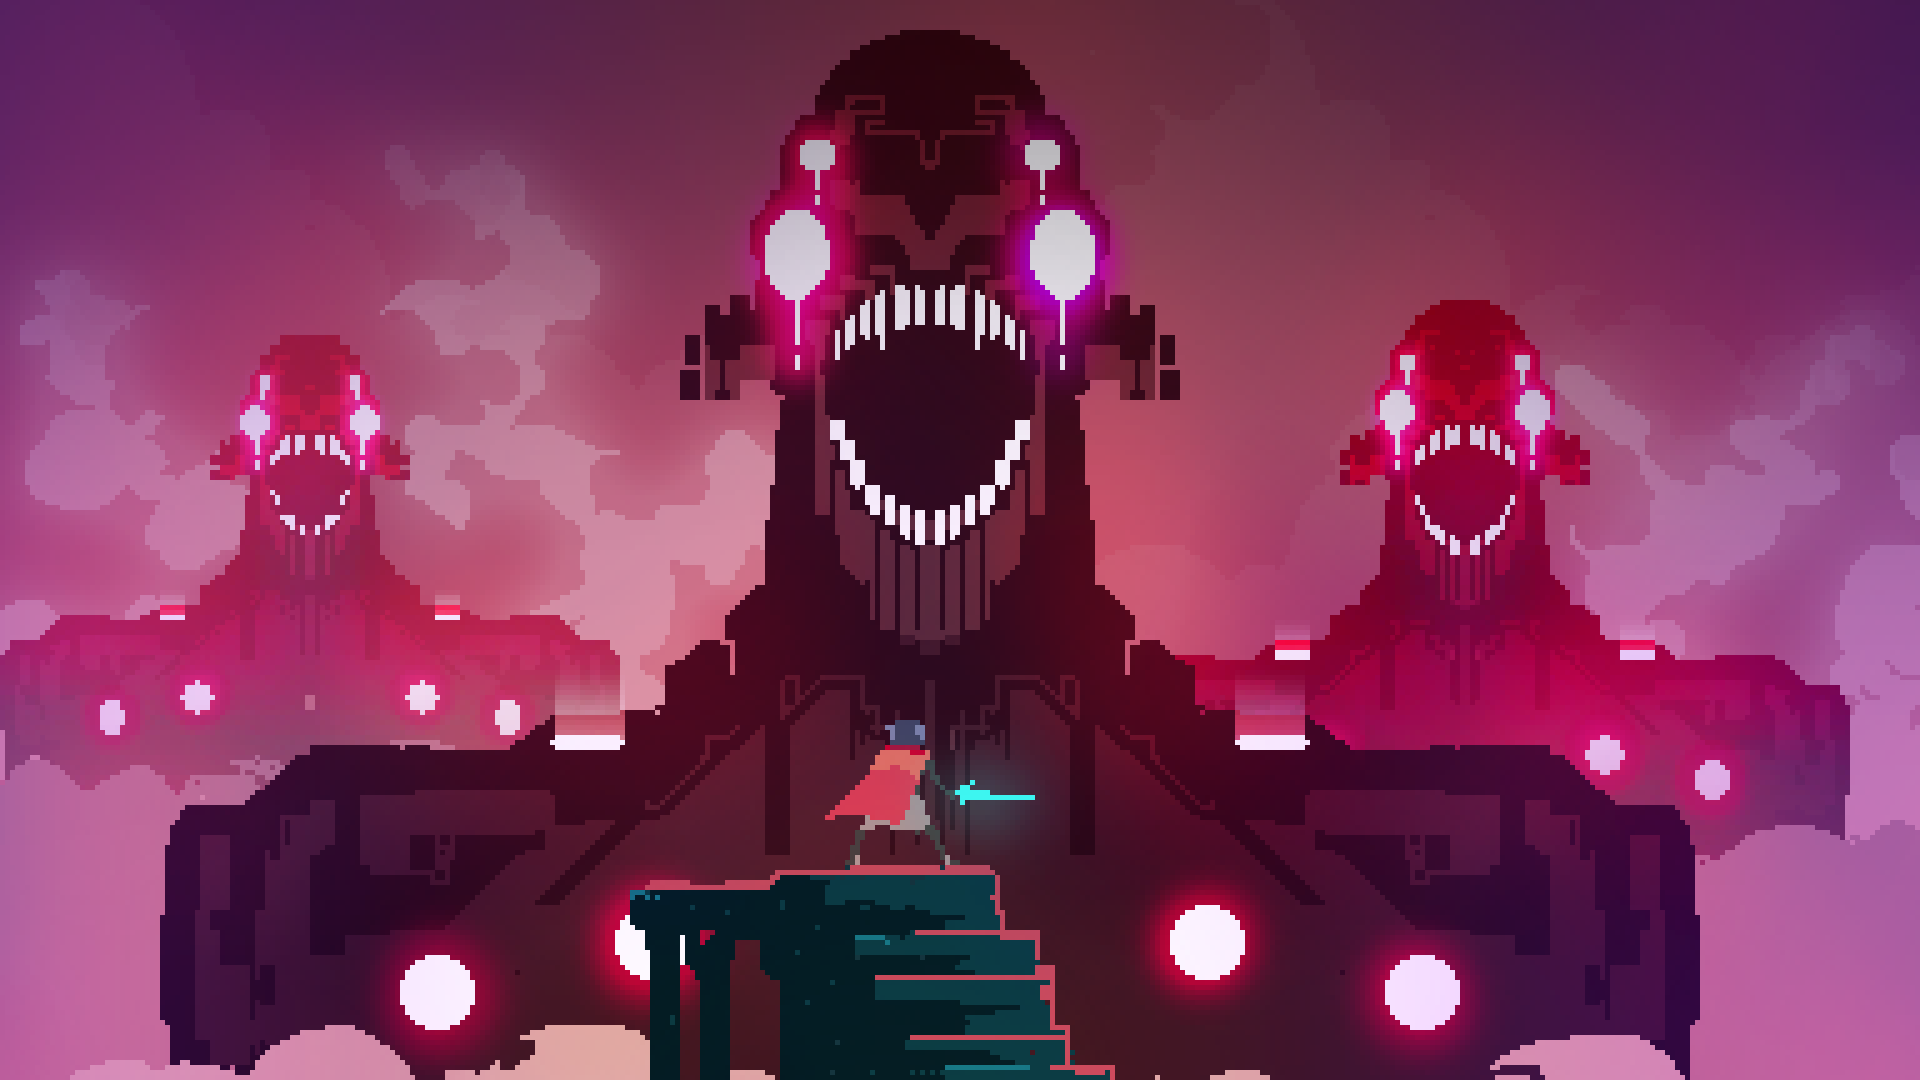 Hyper Light Drifter 1920x1080 Followme Cooliphone6case On Twitter Facebook Google Instagram Linkedin Blogger Tumblr Pixel Art Art Best Indie Games